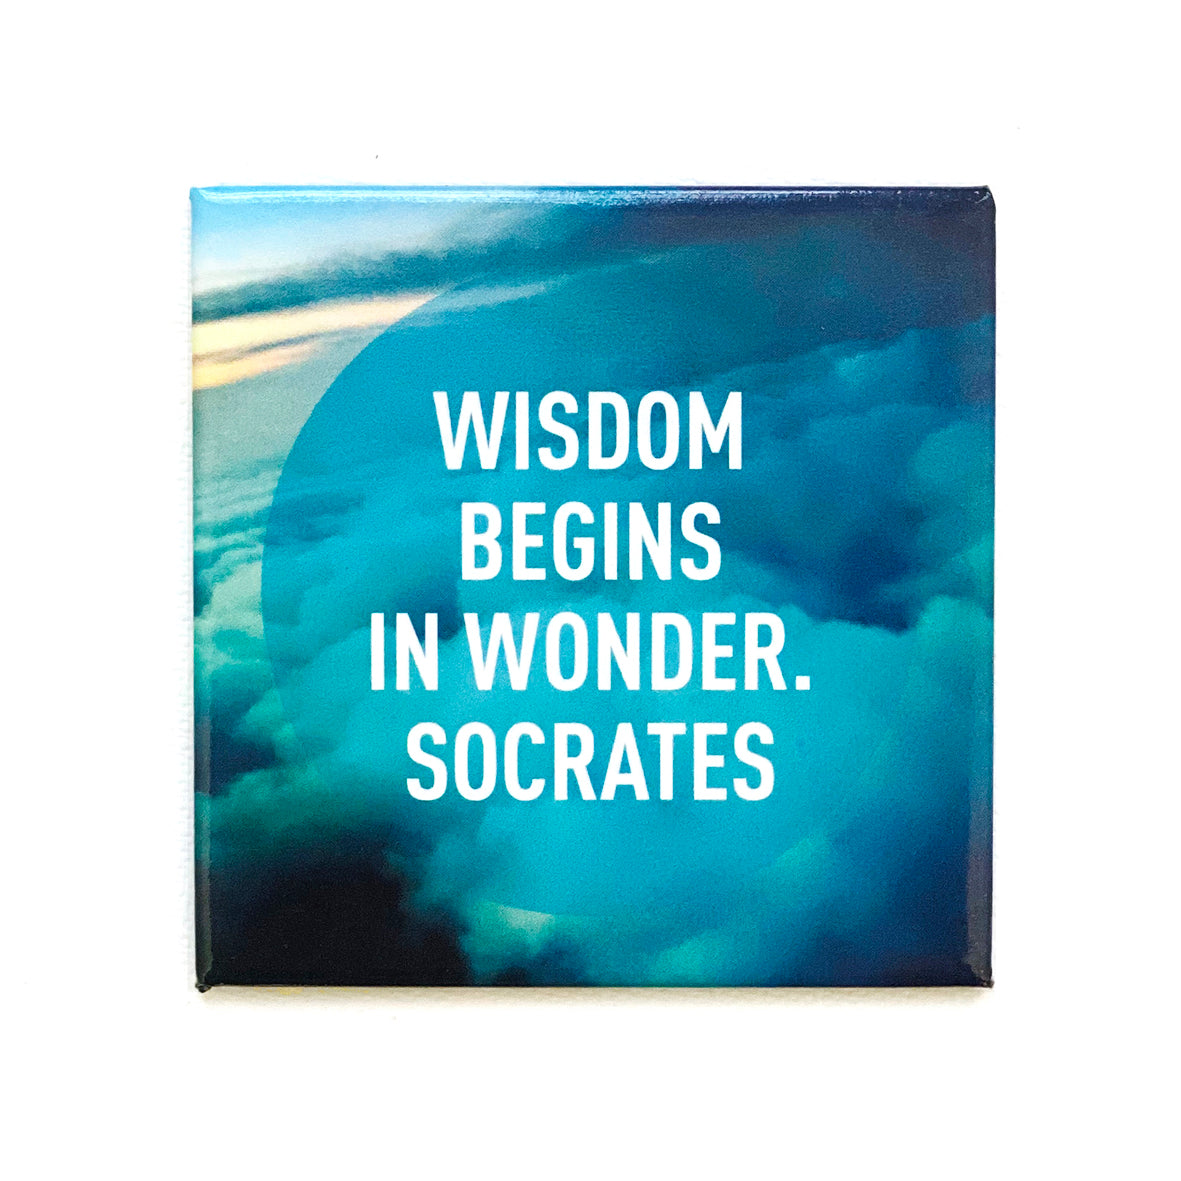 Wisdom begins in wonder. -Socrates magnet